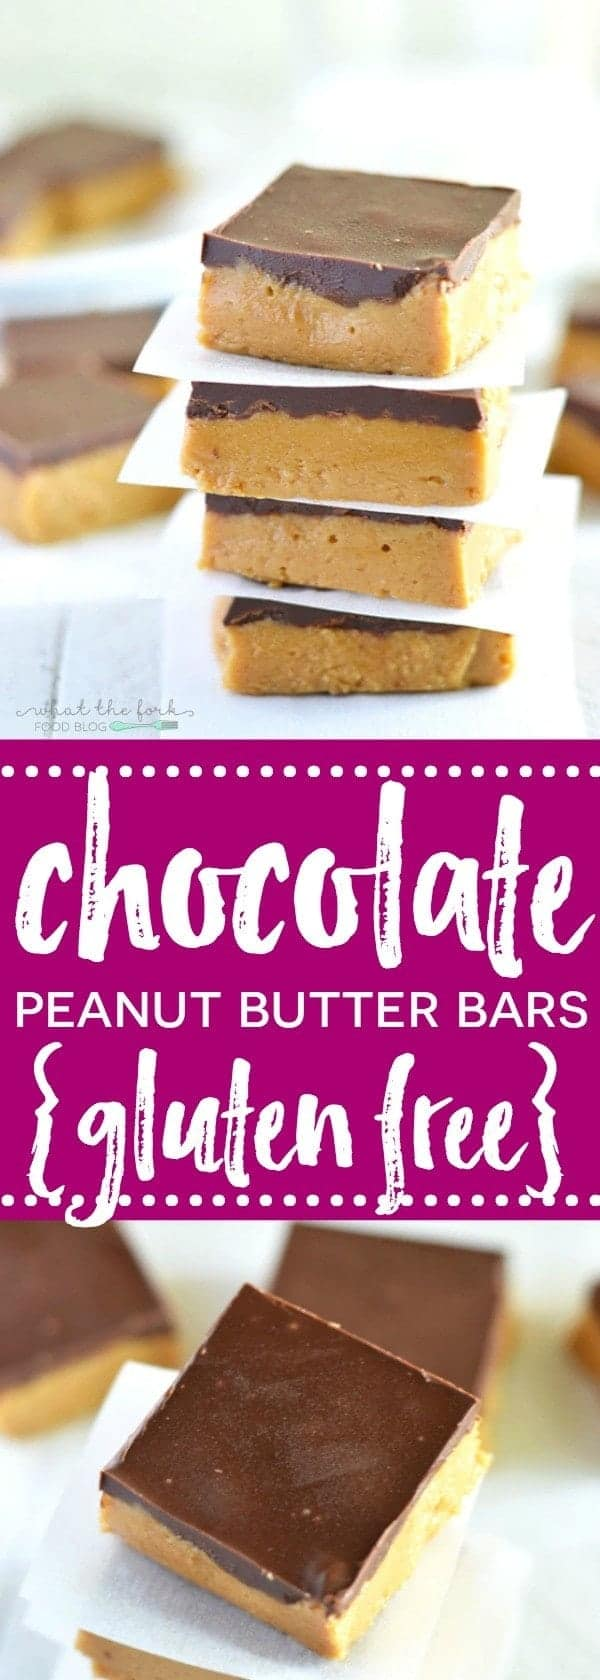 Gluten Free Chocolate Peanut Butter Bars - What the Fork